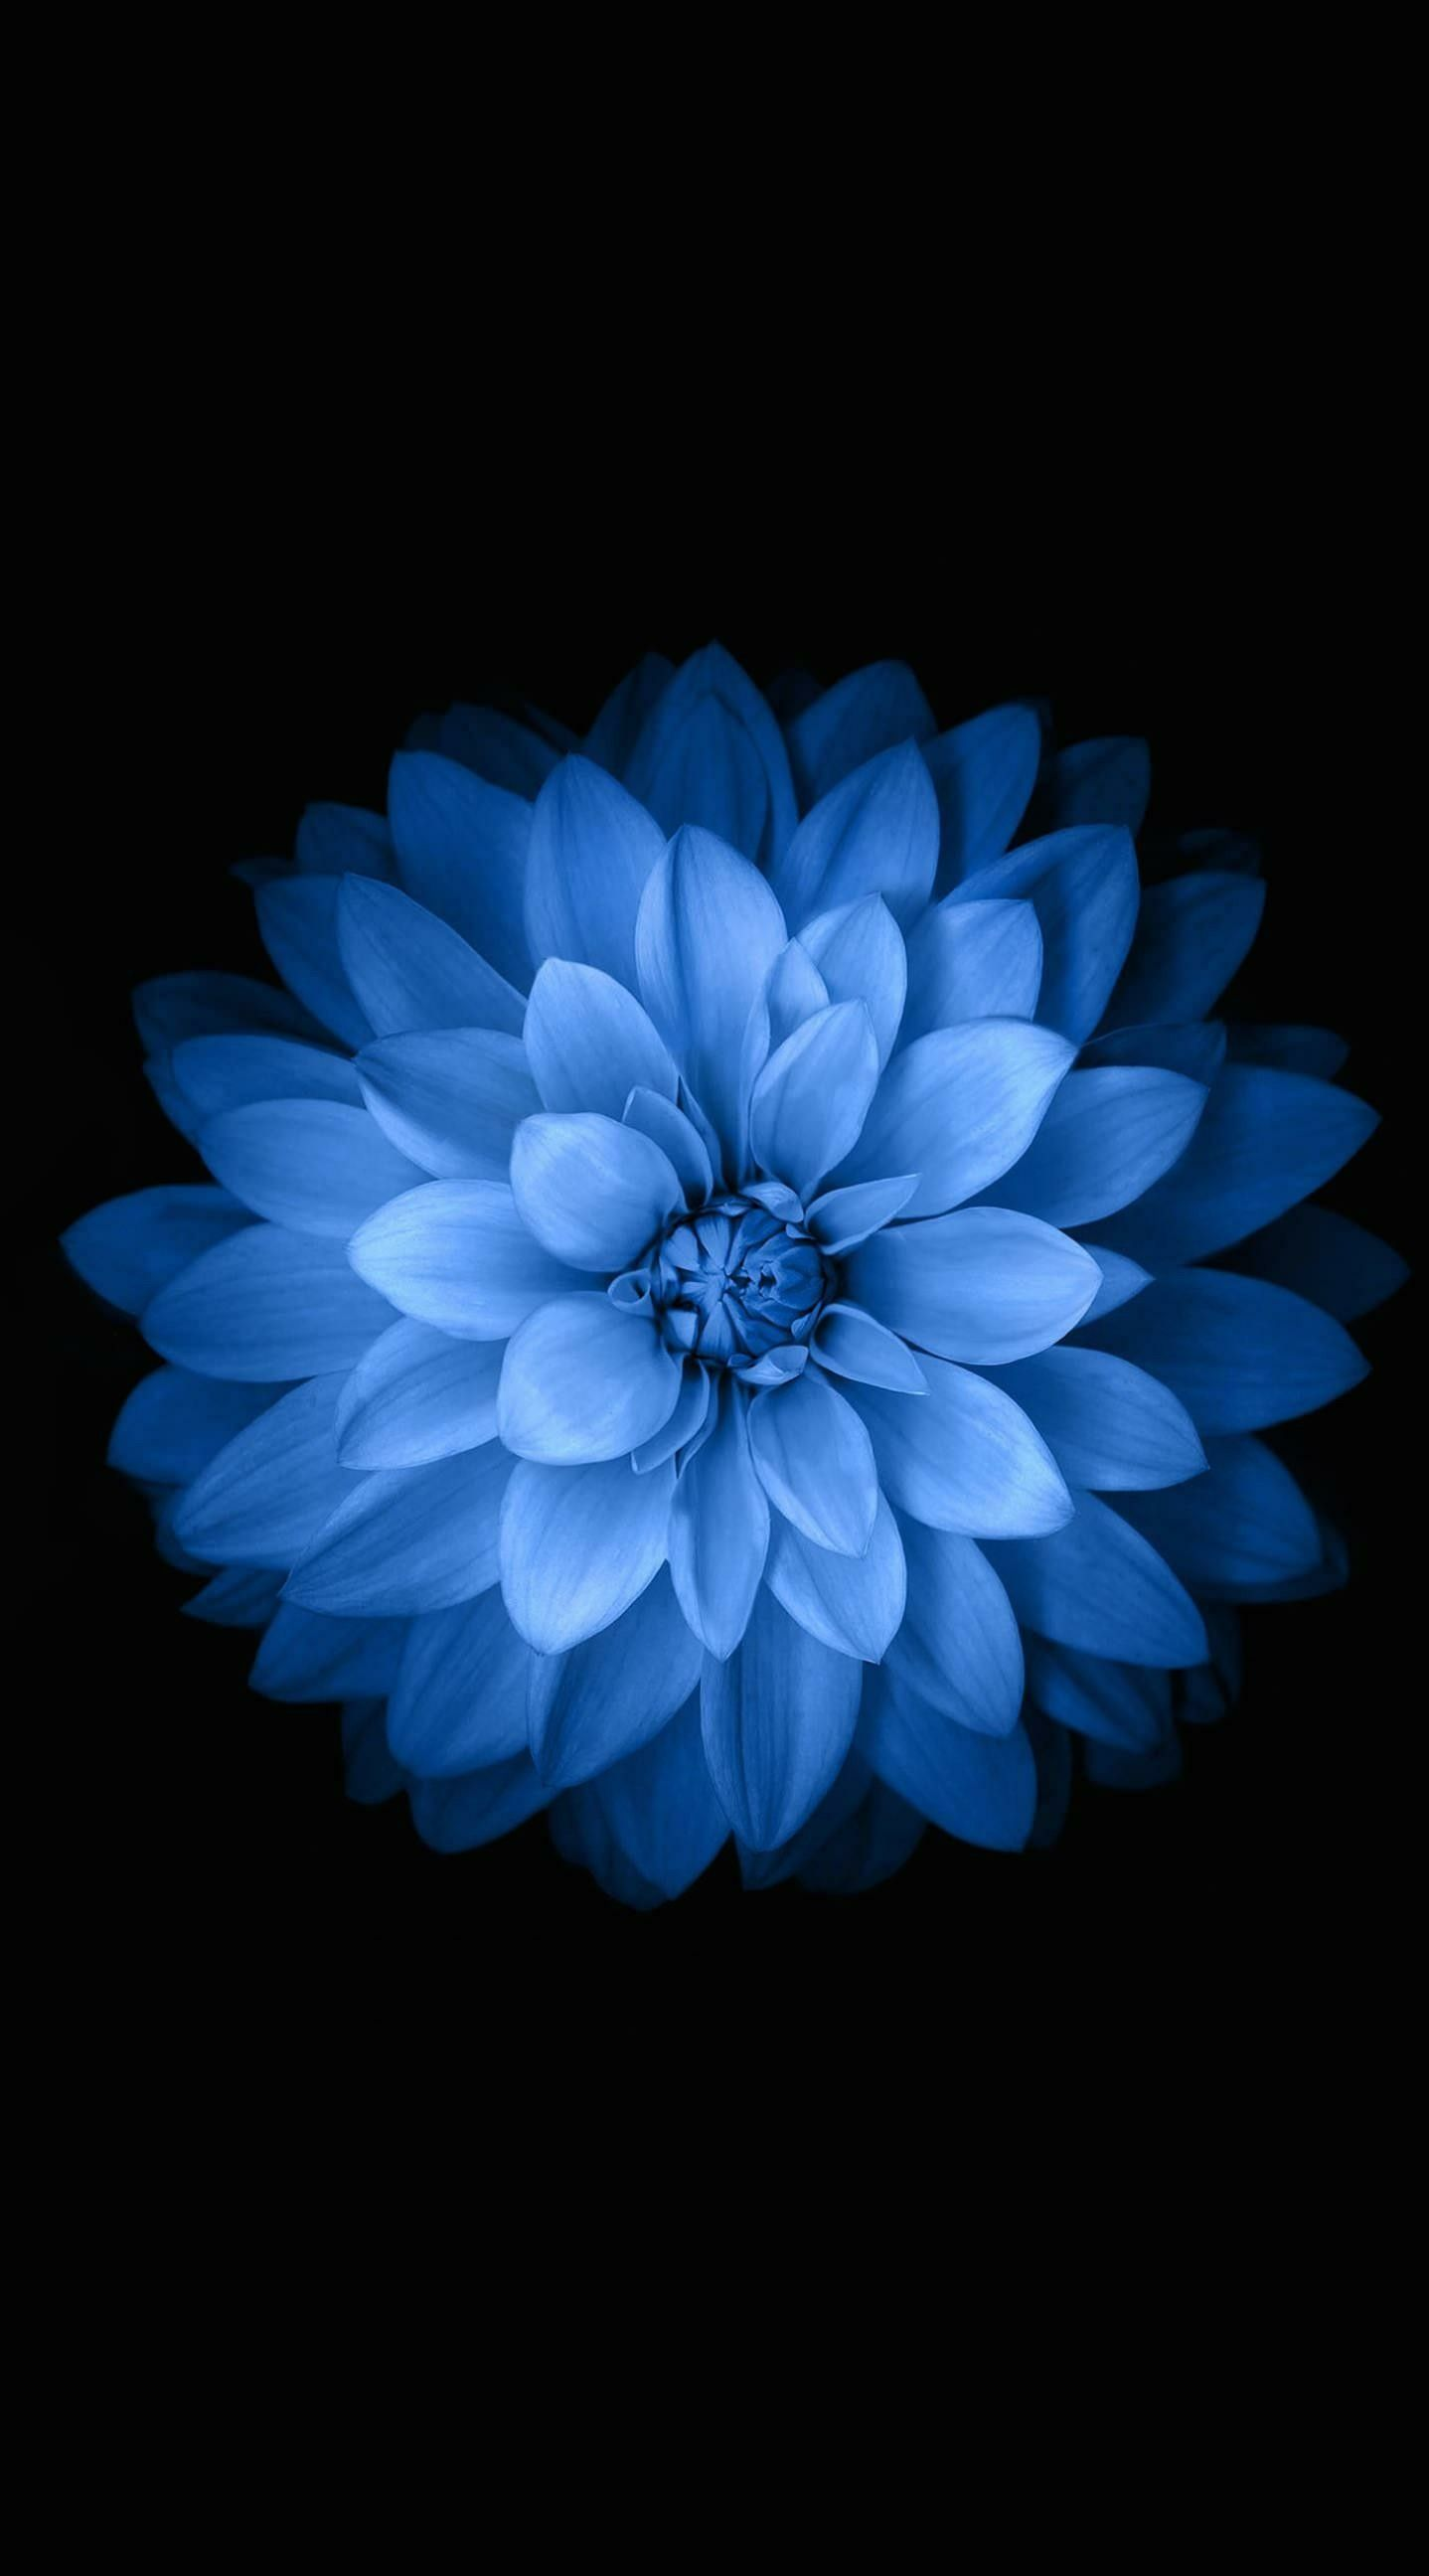 Pin By Graciegirl On Floral Flower Iphone Wallpaper Blue Flower Images, Photos, Reviews